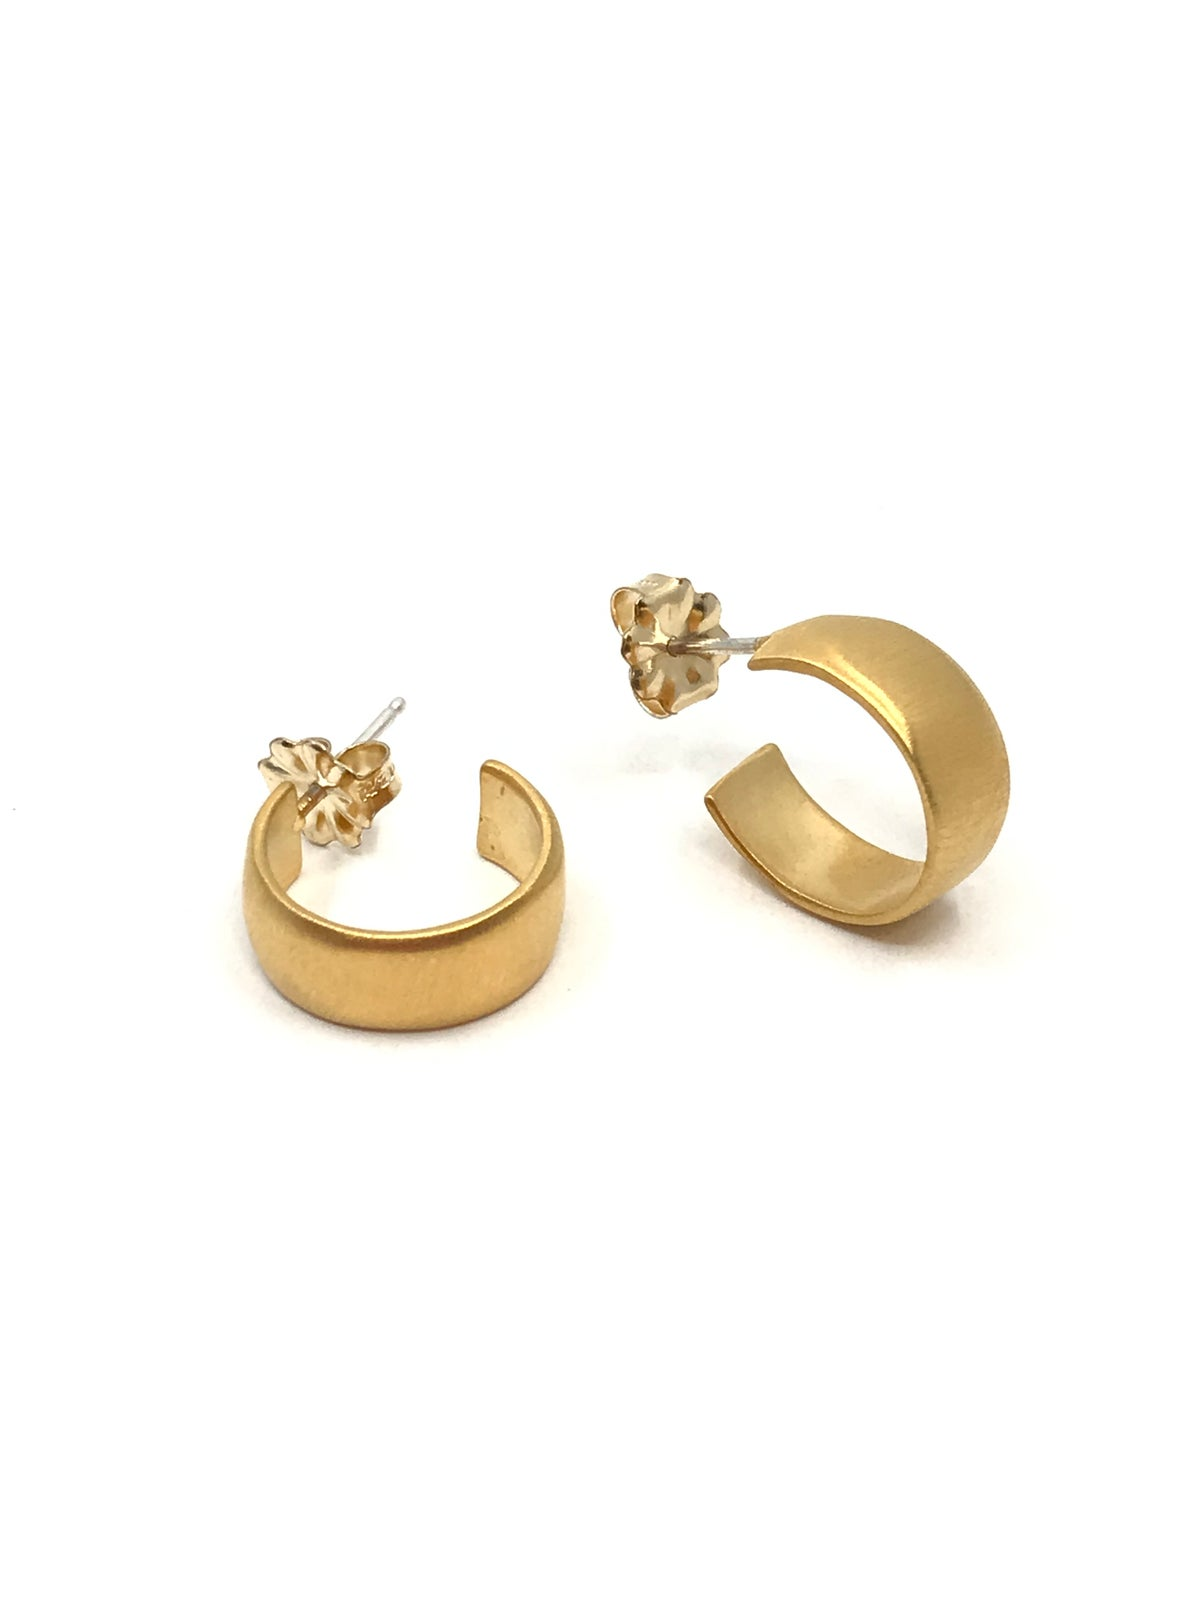 Gold Vermeil Hoops by Philippa Roberts